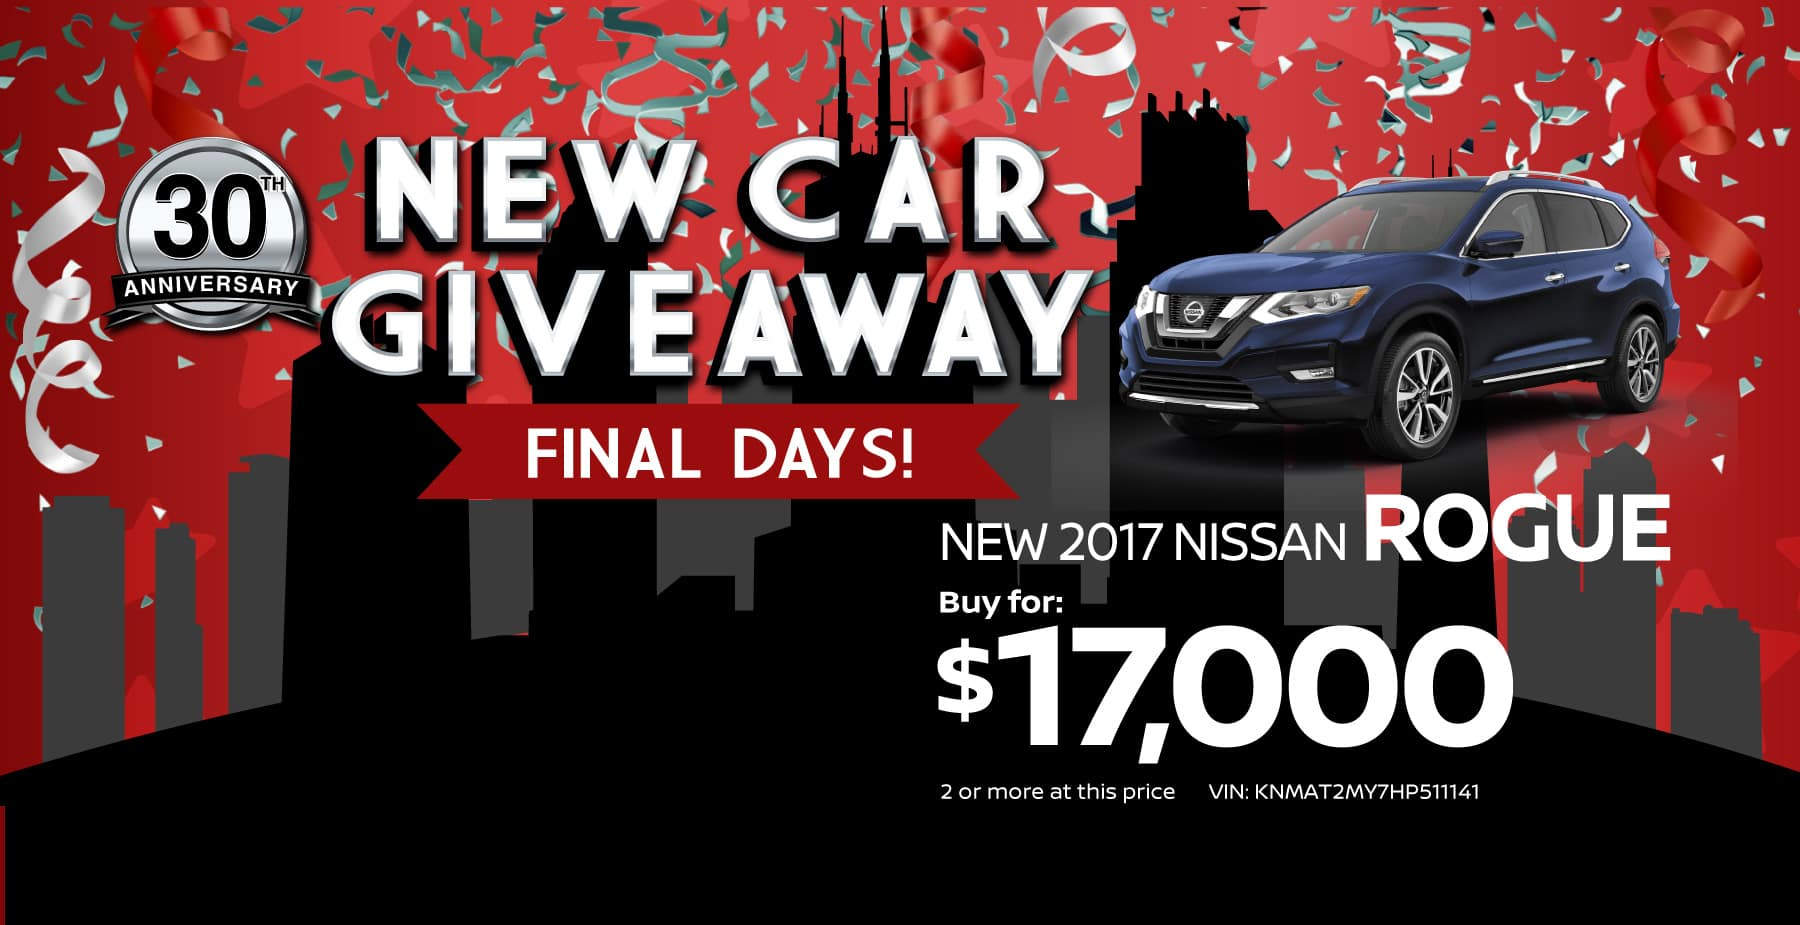 Final days of our new car giveaway sale at star nissan